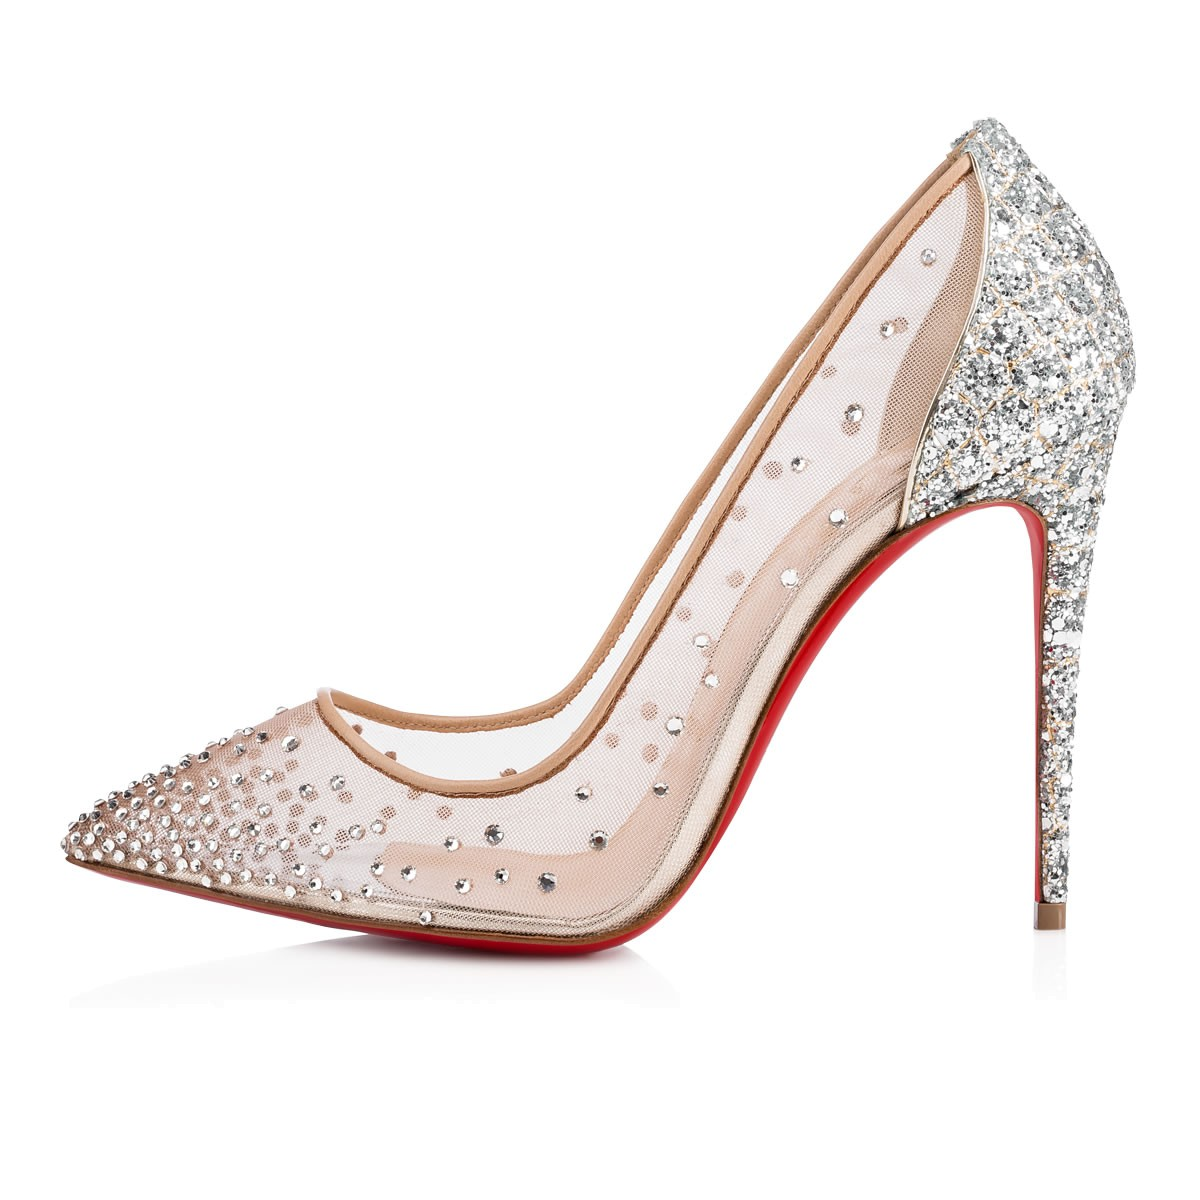 b39eae75678 FOLLIES STRASS 100 VERSION CRYSTAL Strass - Women Shoes .